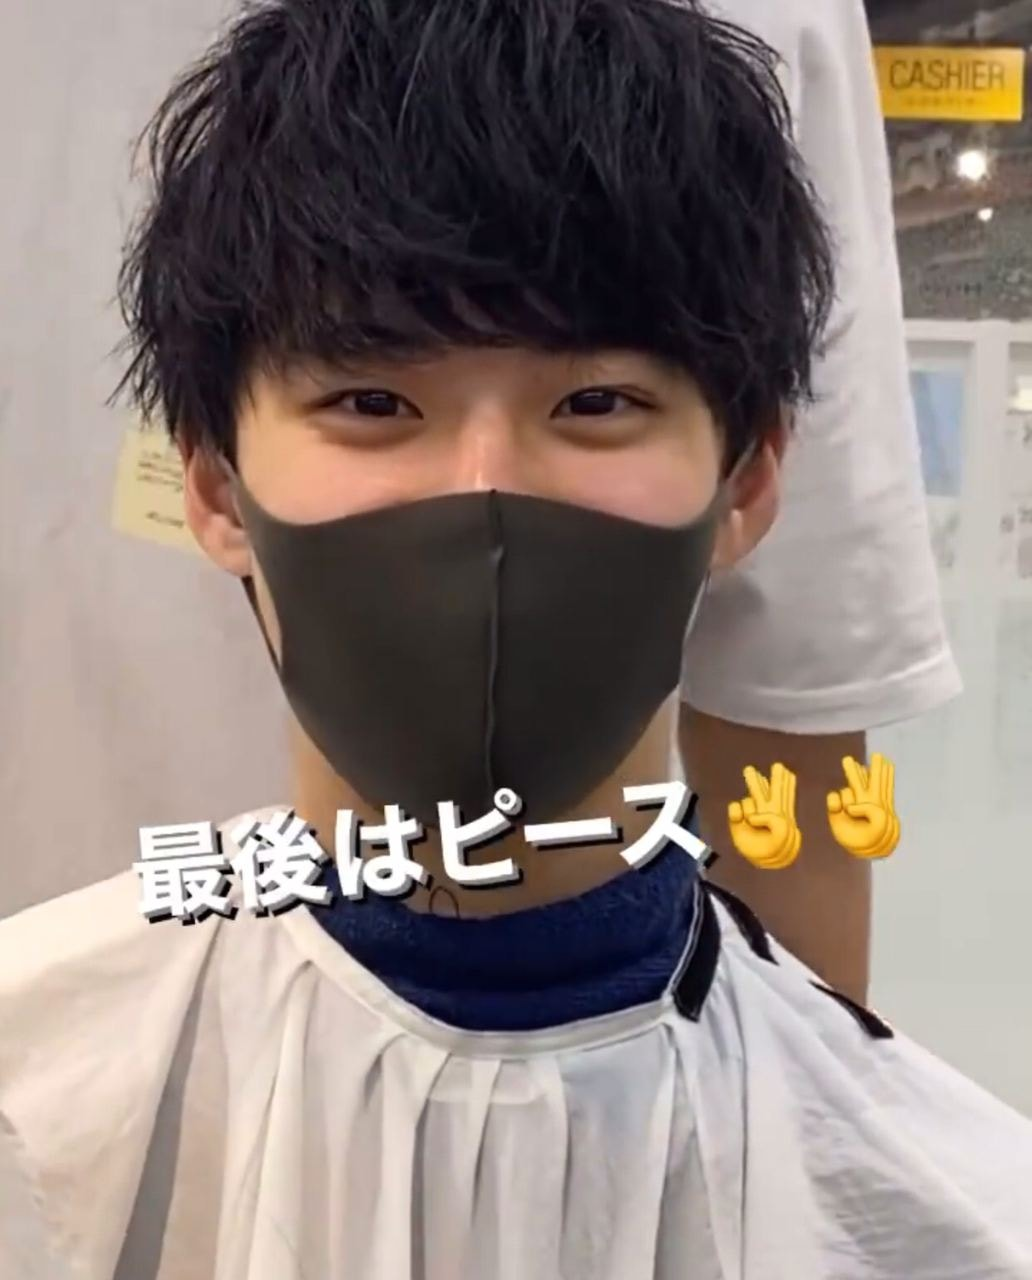 handsome japanese boy - final hairstyle